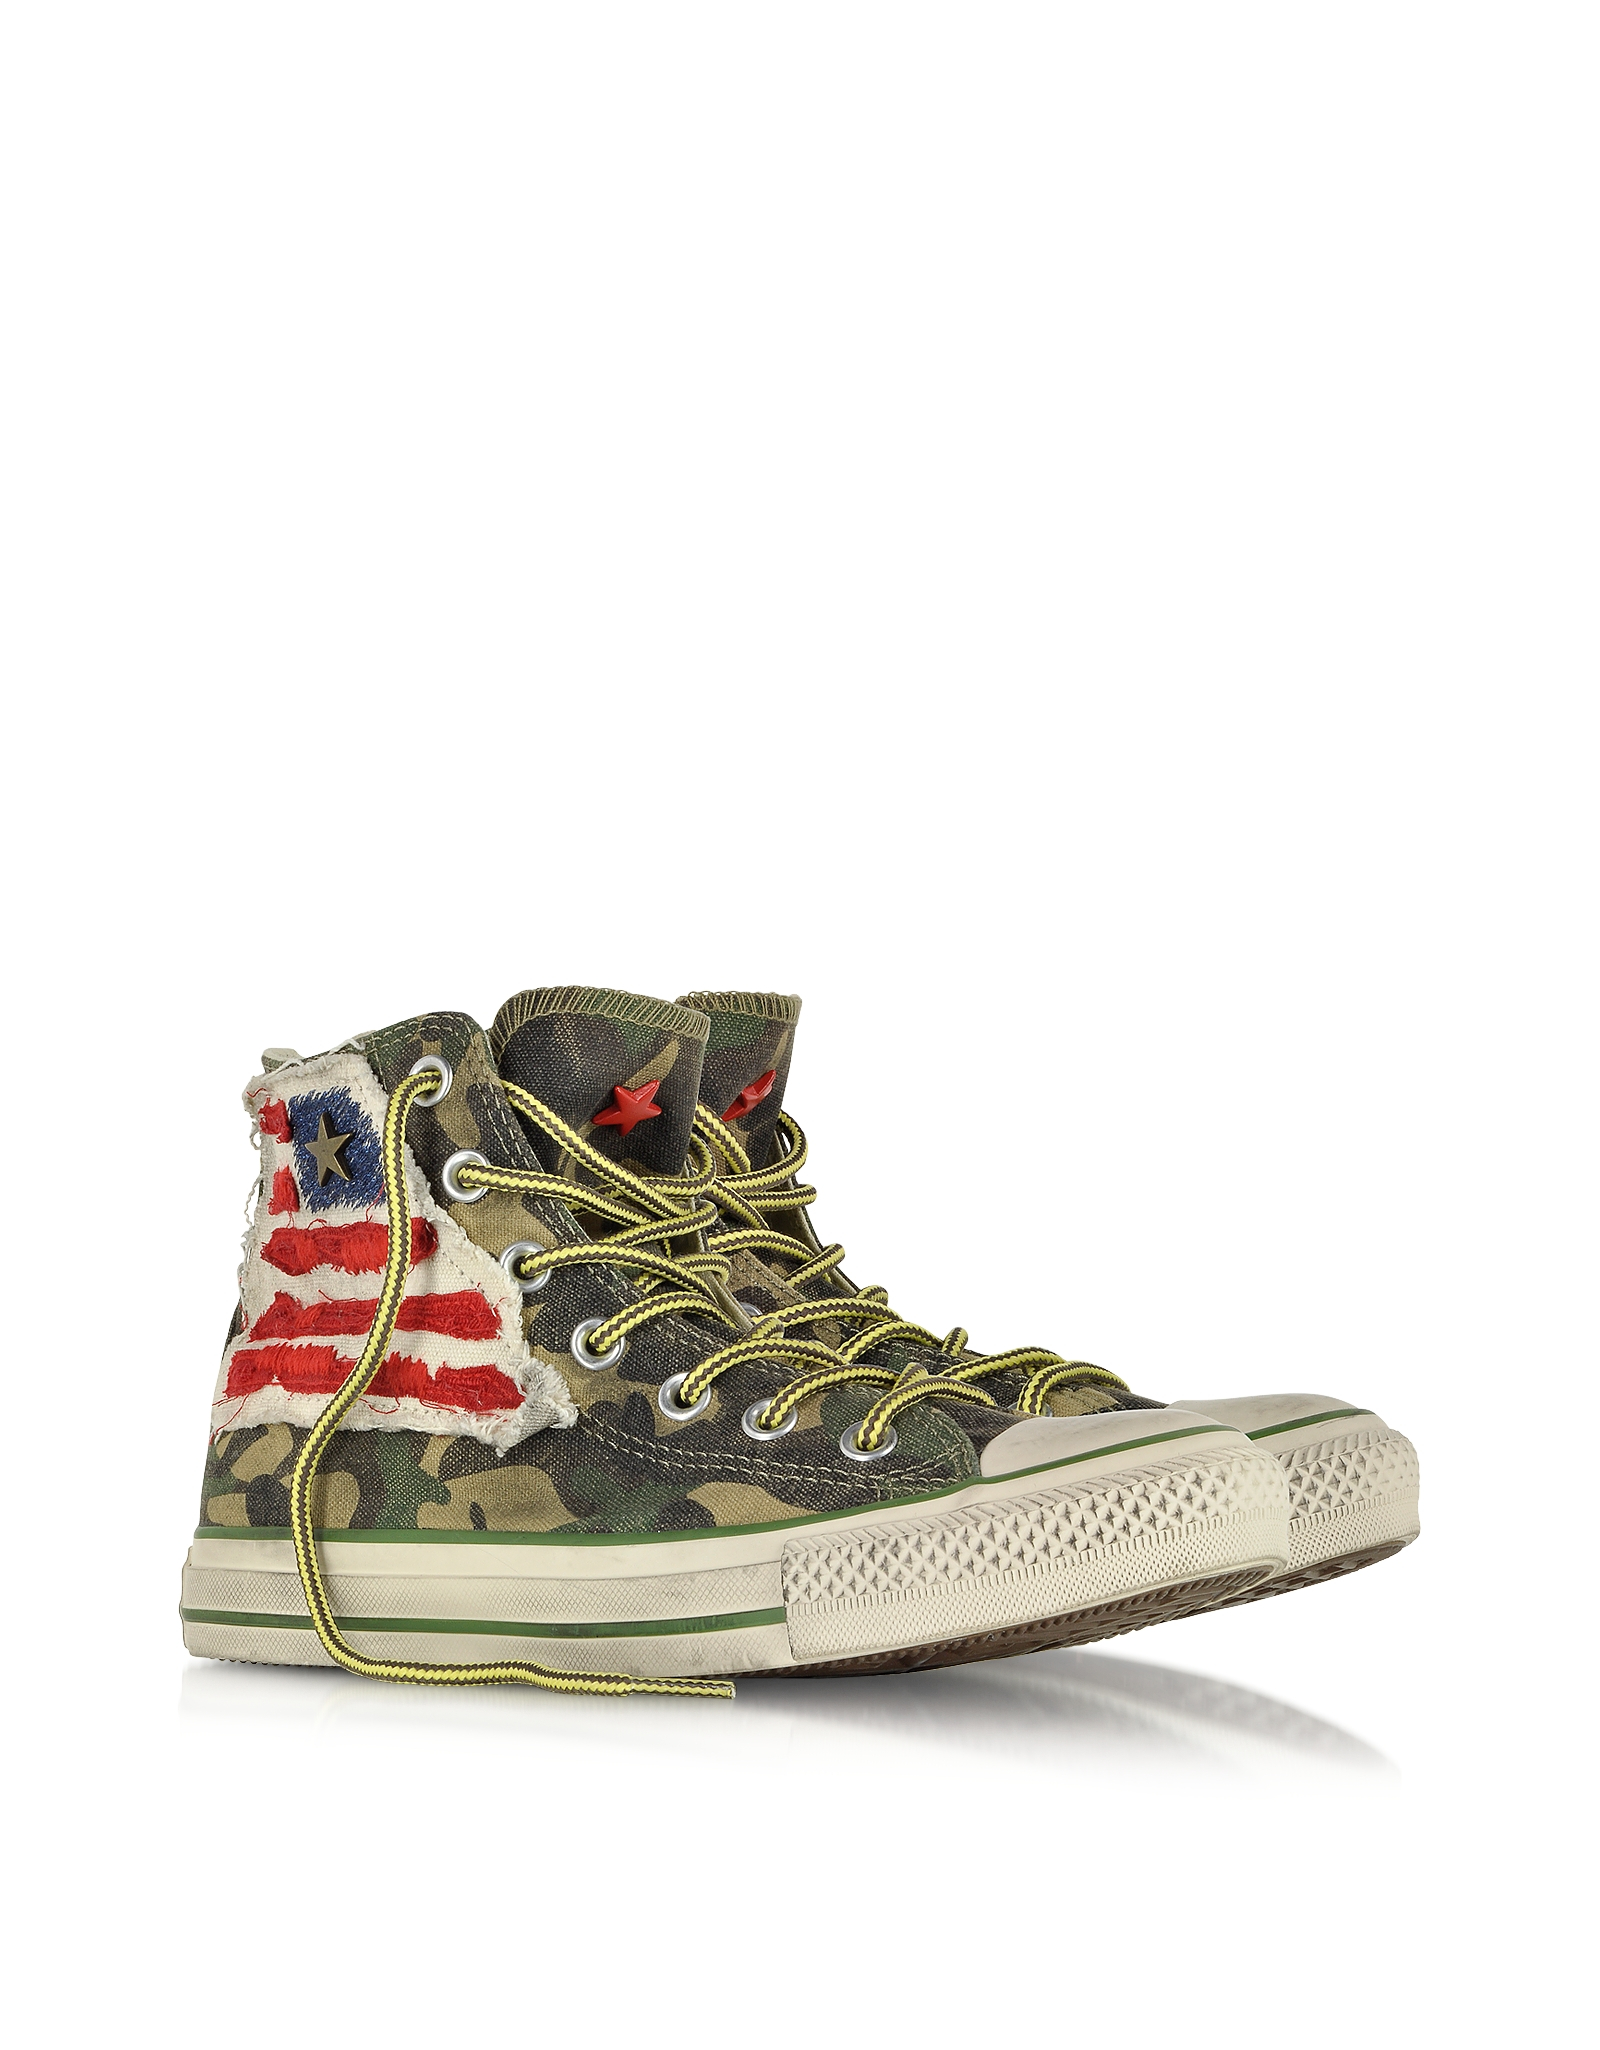 Converse All Star Hi Canvas Ltd Camo Graduate Flag Sneaker